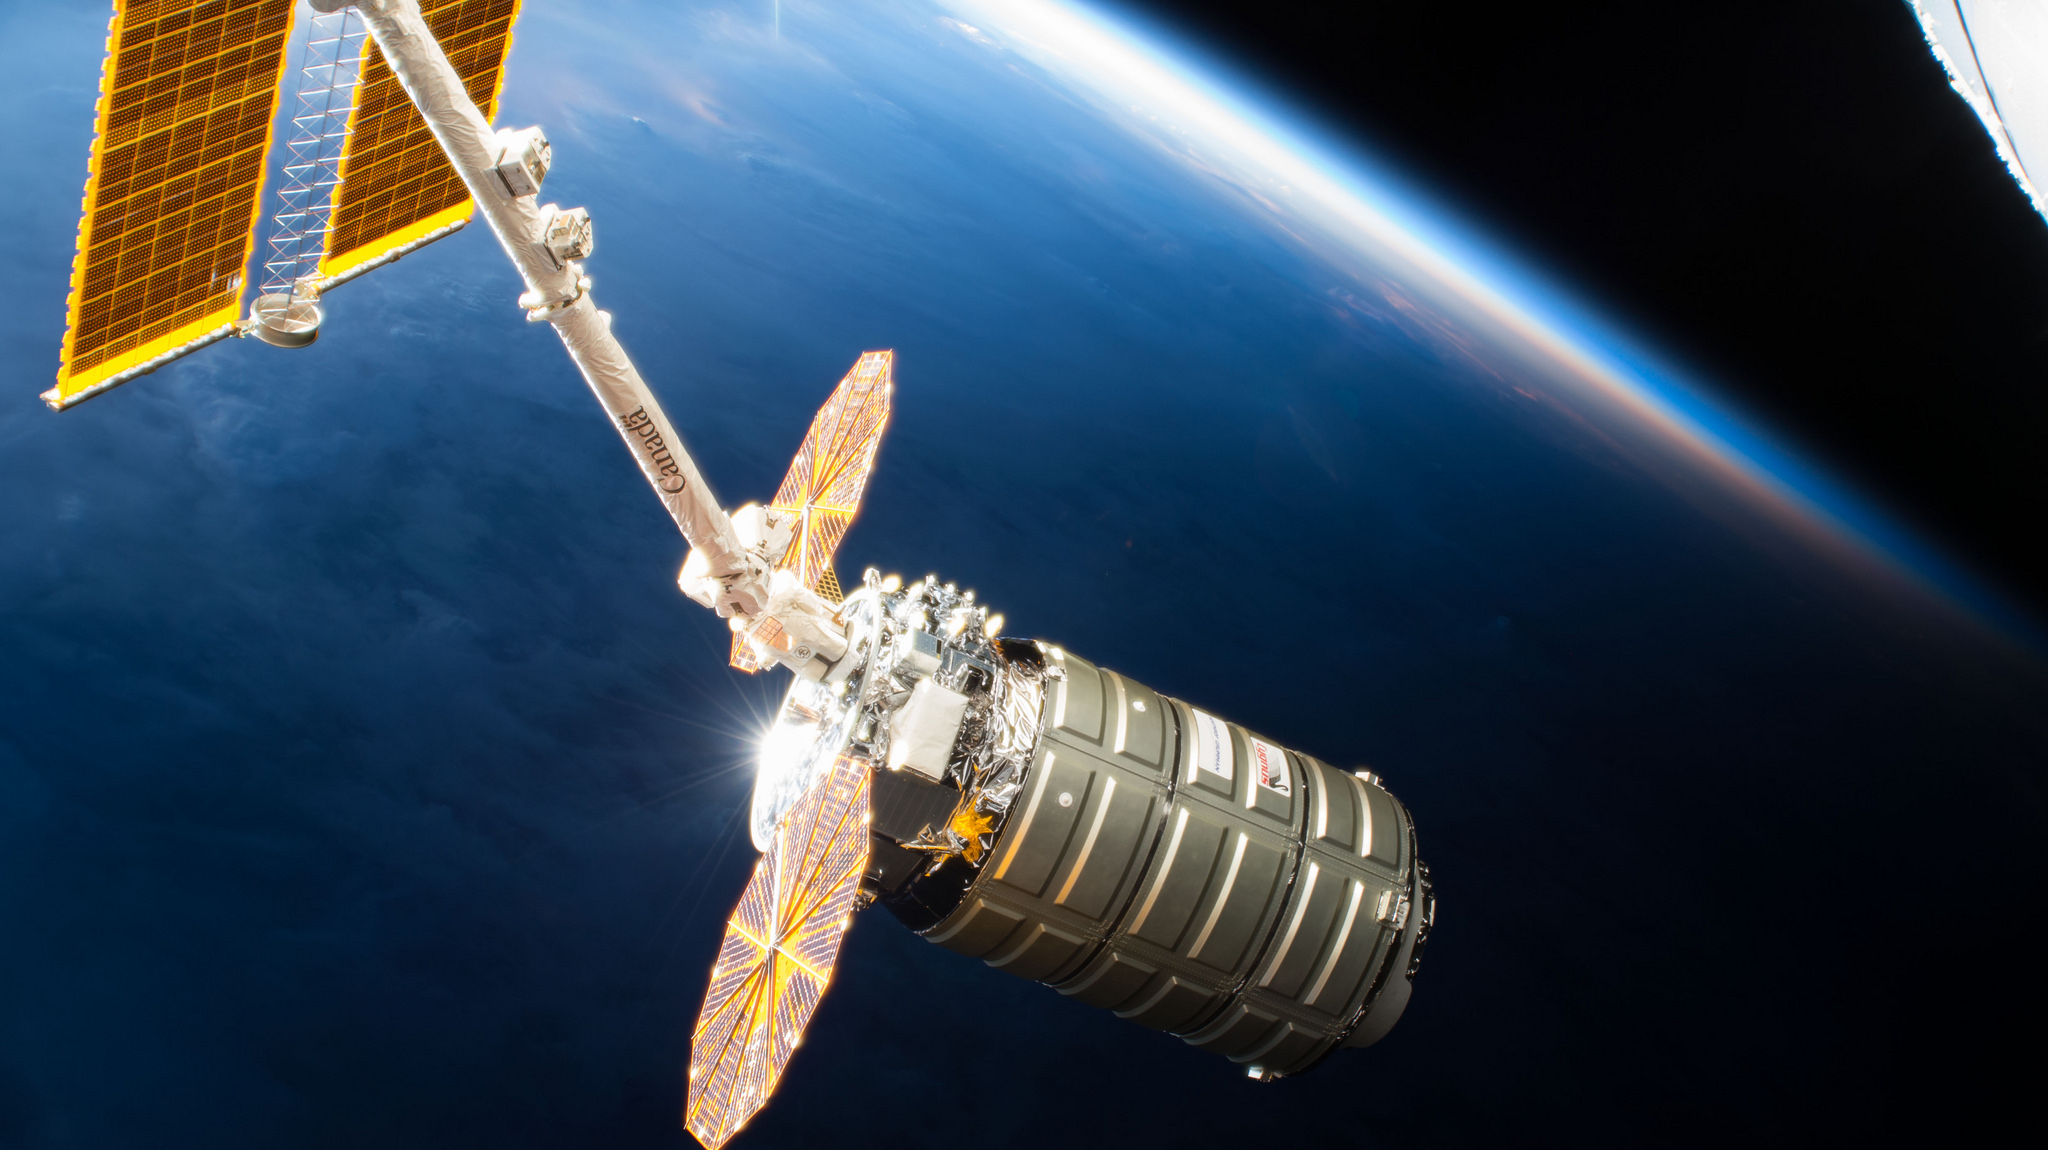 The NG-10 Cygnus spacecraft is captured by the space station's robotic arm. Credit: NASA